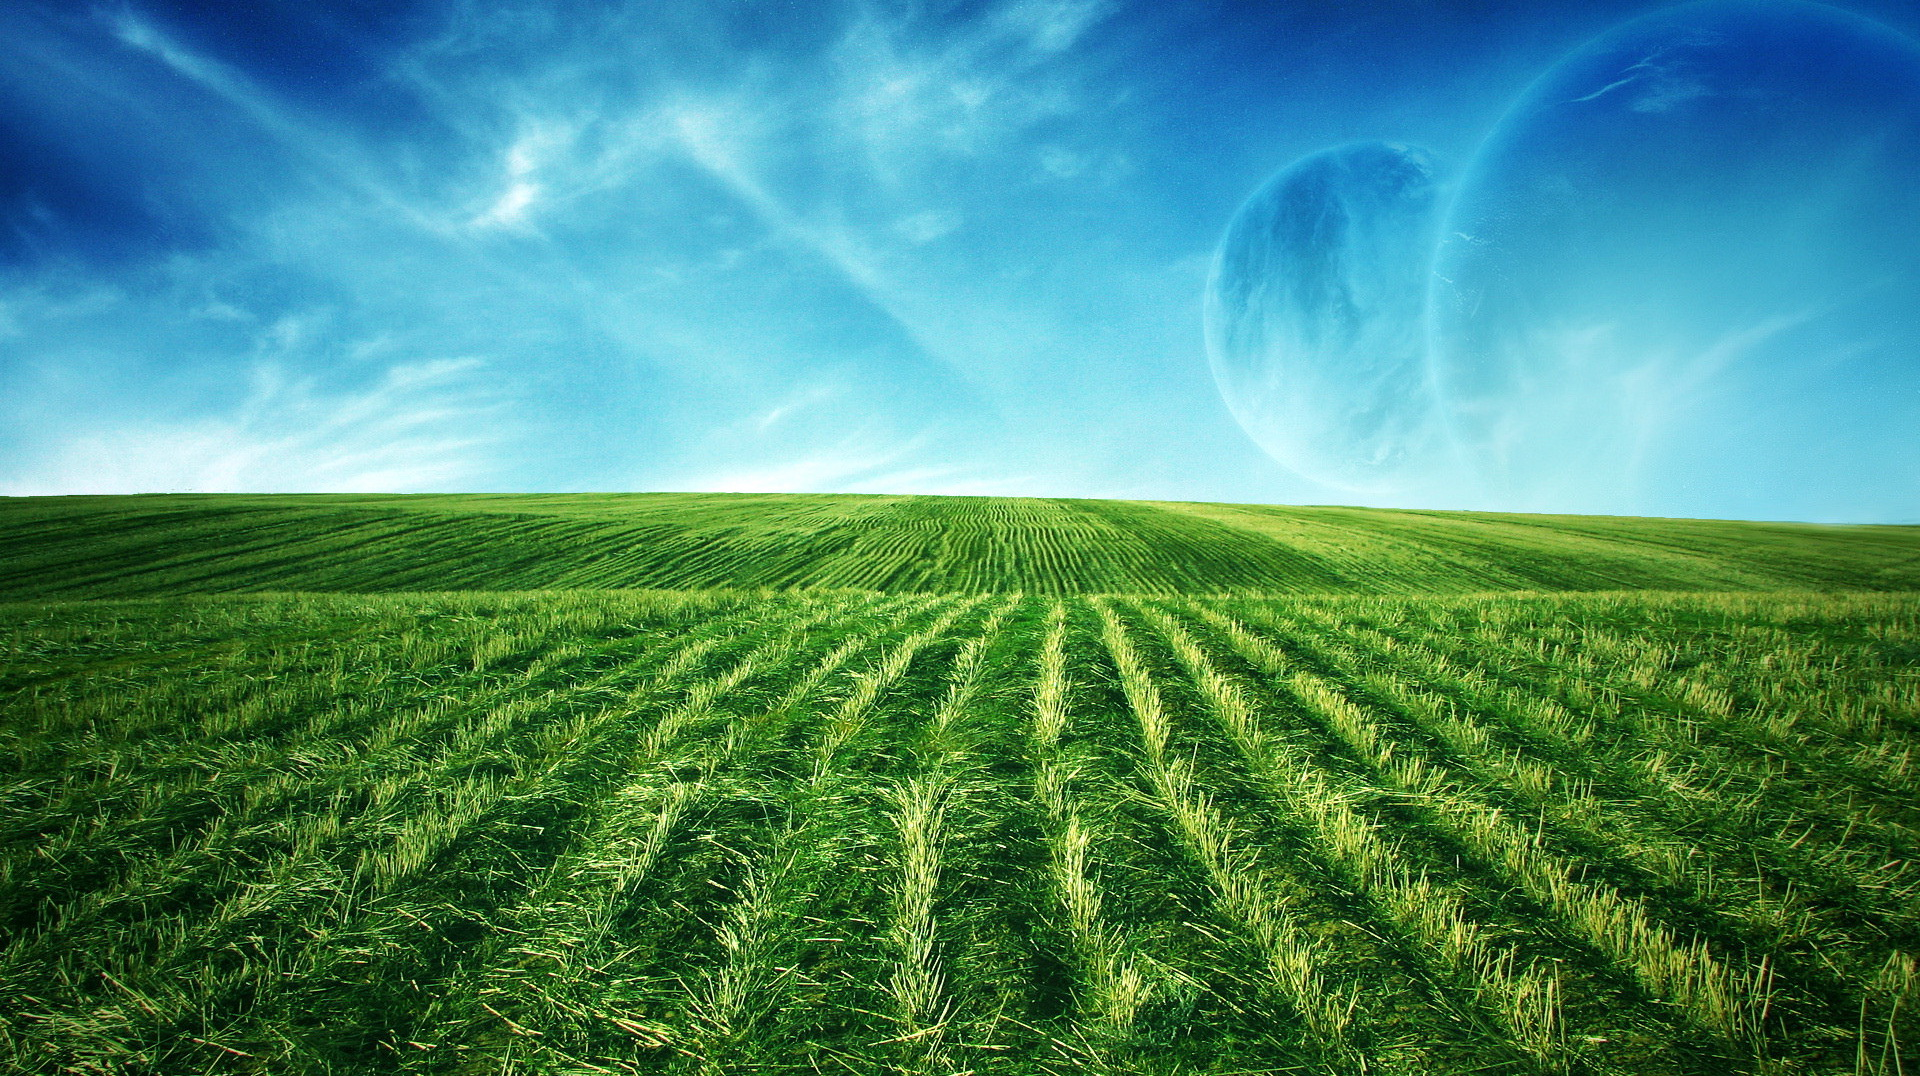 click to free download the wallpaper--Natural Scenery picture - An Endless Field of Green Wheats, the Blue Sky, is an Impressive Scene 1920X1080 free wallpaper download